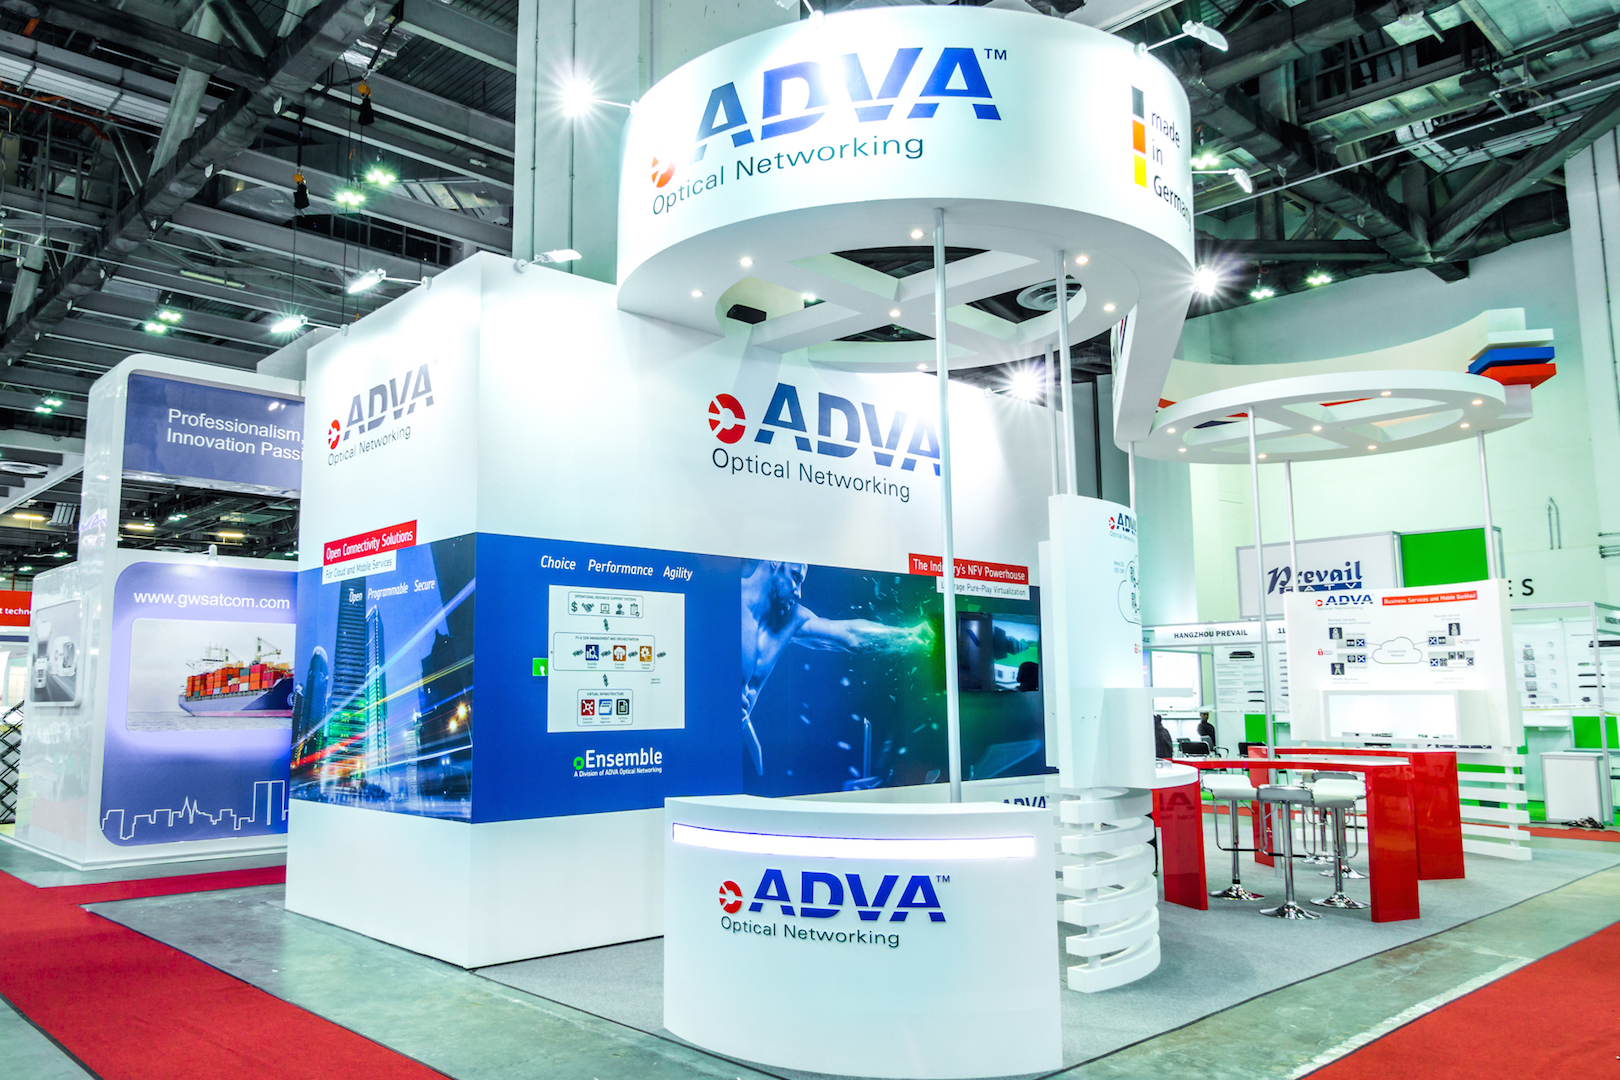 Exhibition Booth Shell Scheme : Shell scheme or customized booth design a guide for new